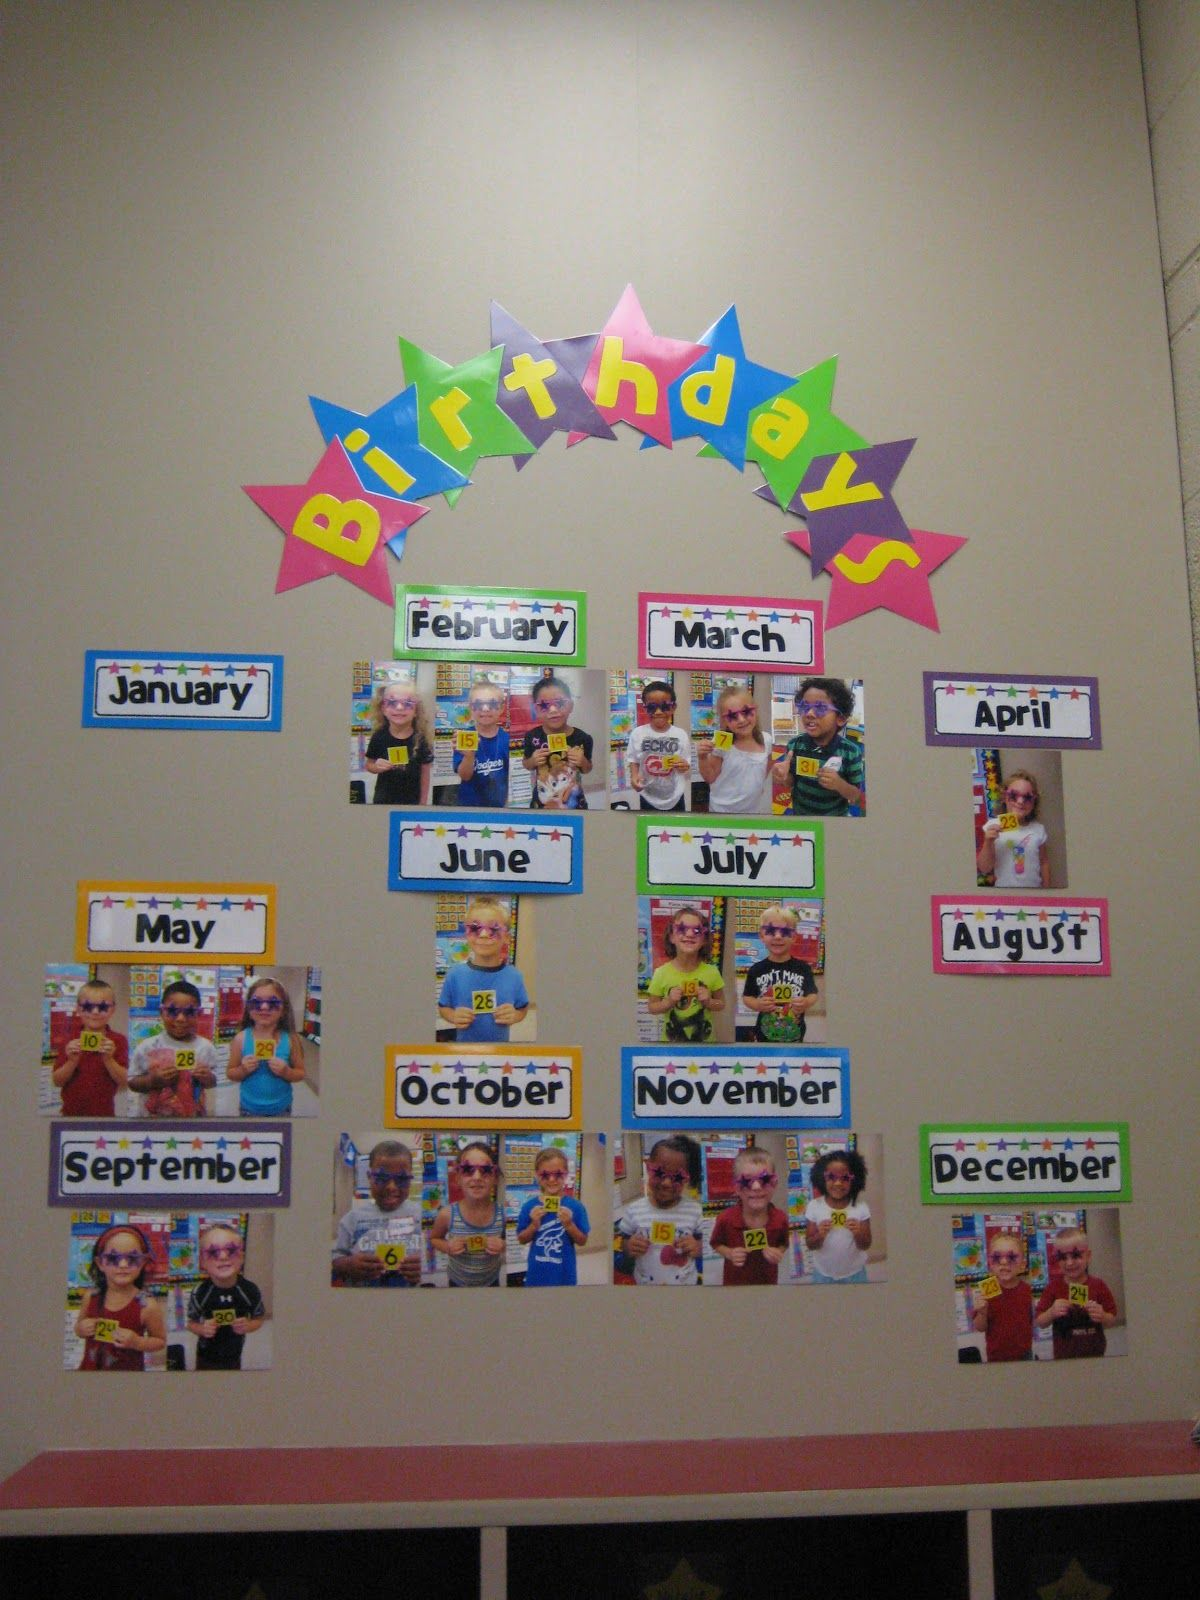 Super Cute Birthdays Pictures Holding The Date Love This Idea Image Only